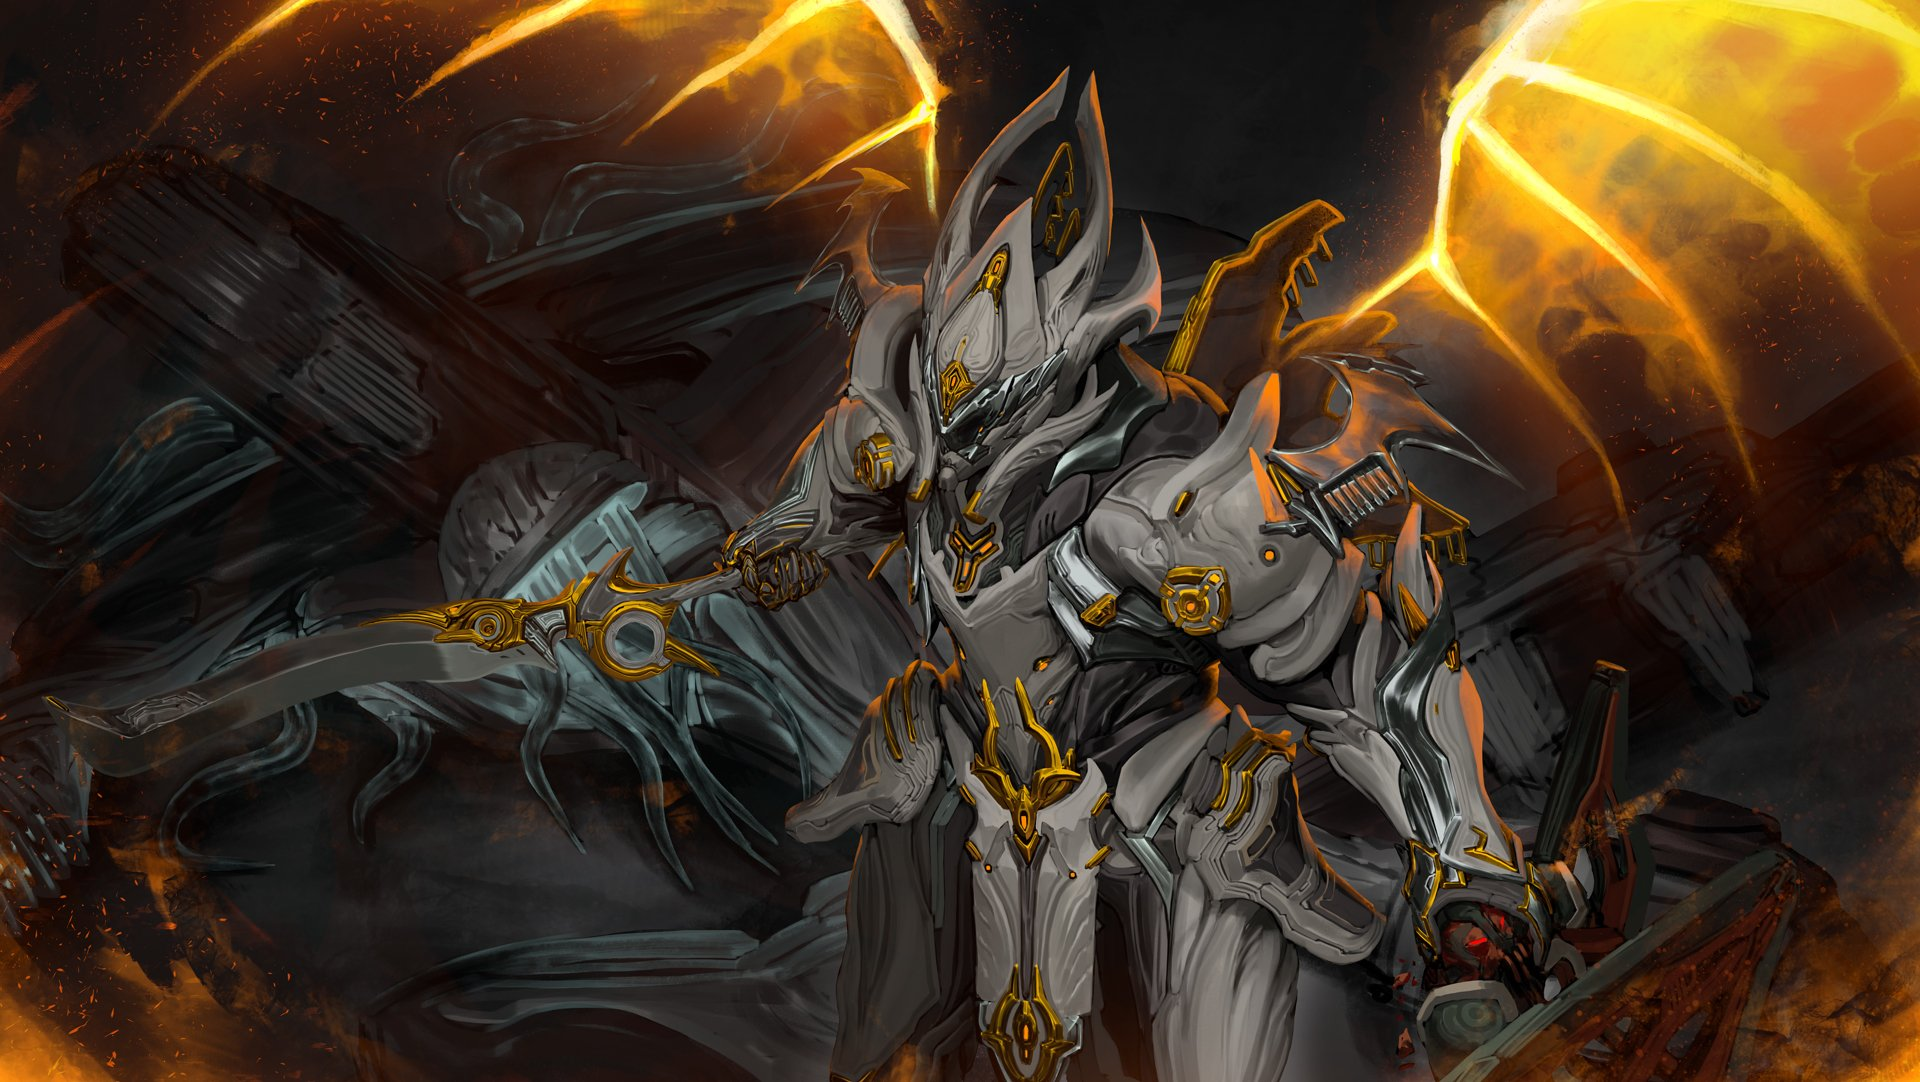 Sentient Slayer Chroma Prime Hd Wallpaper Background Image